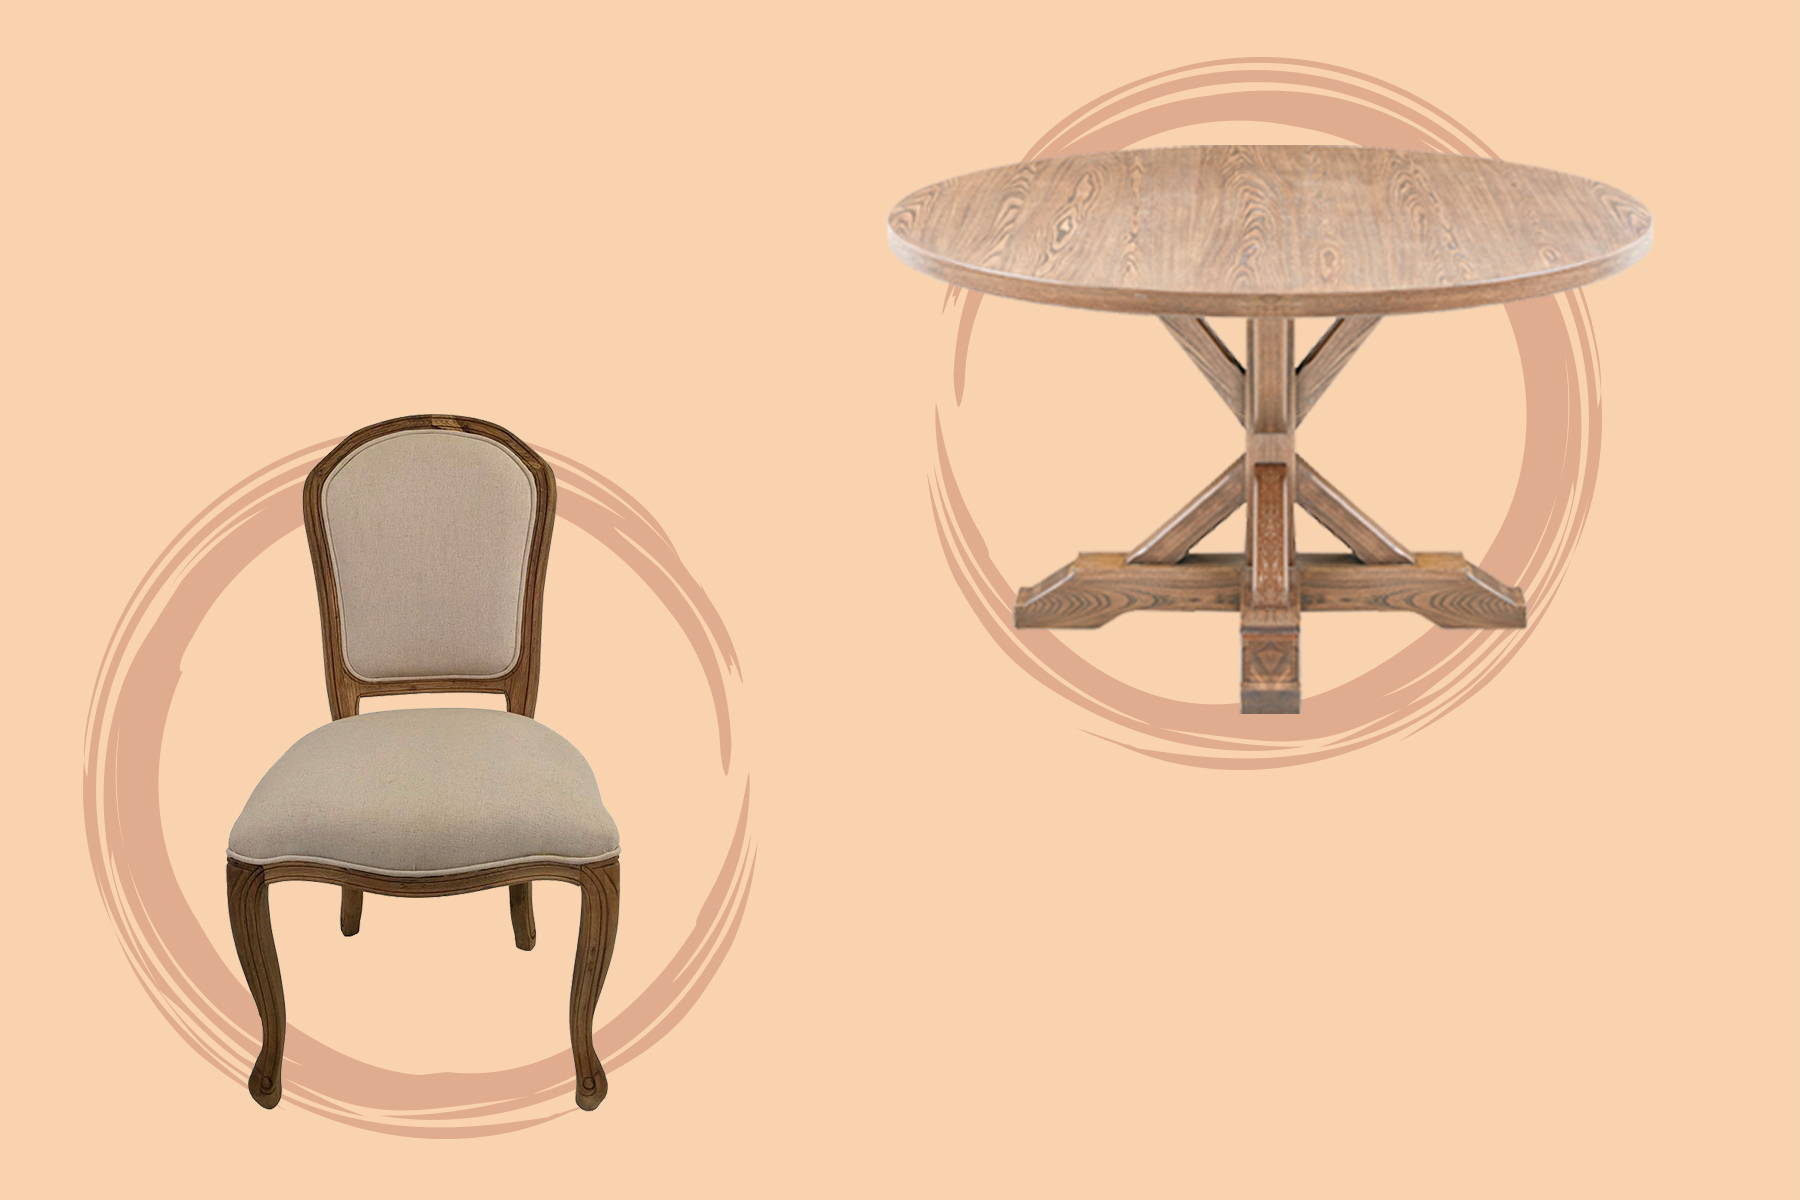 wooden round table and a chair